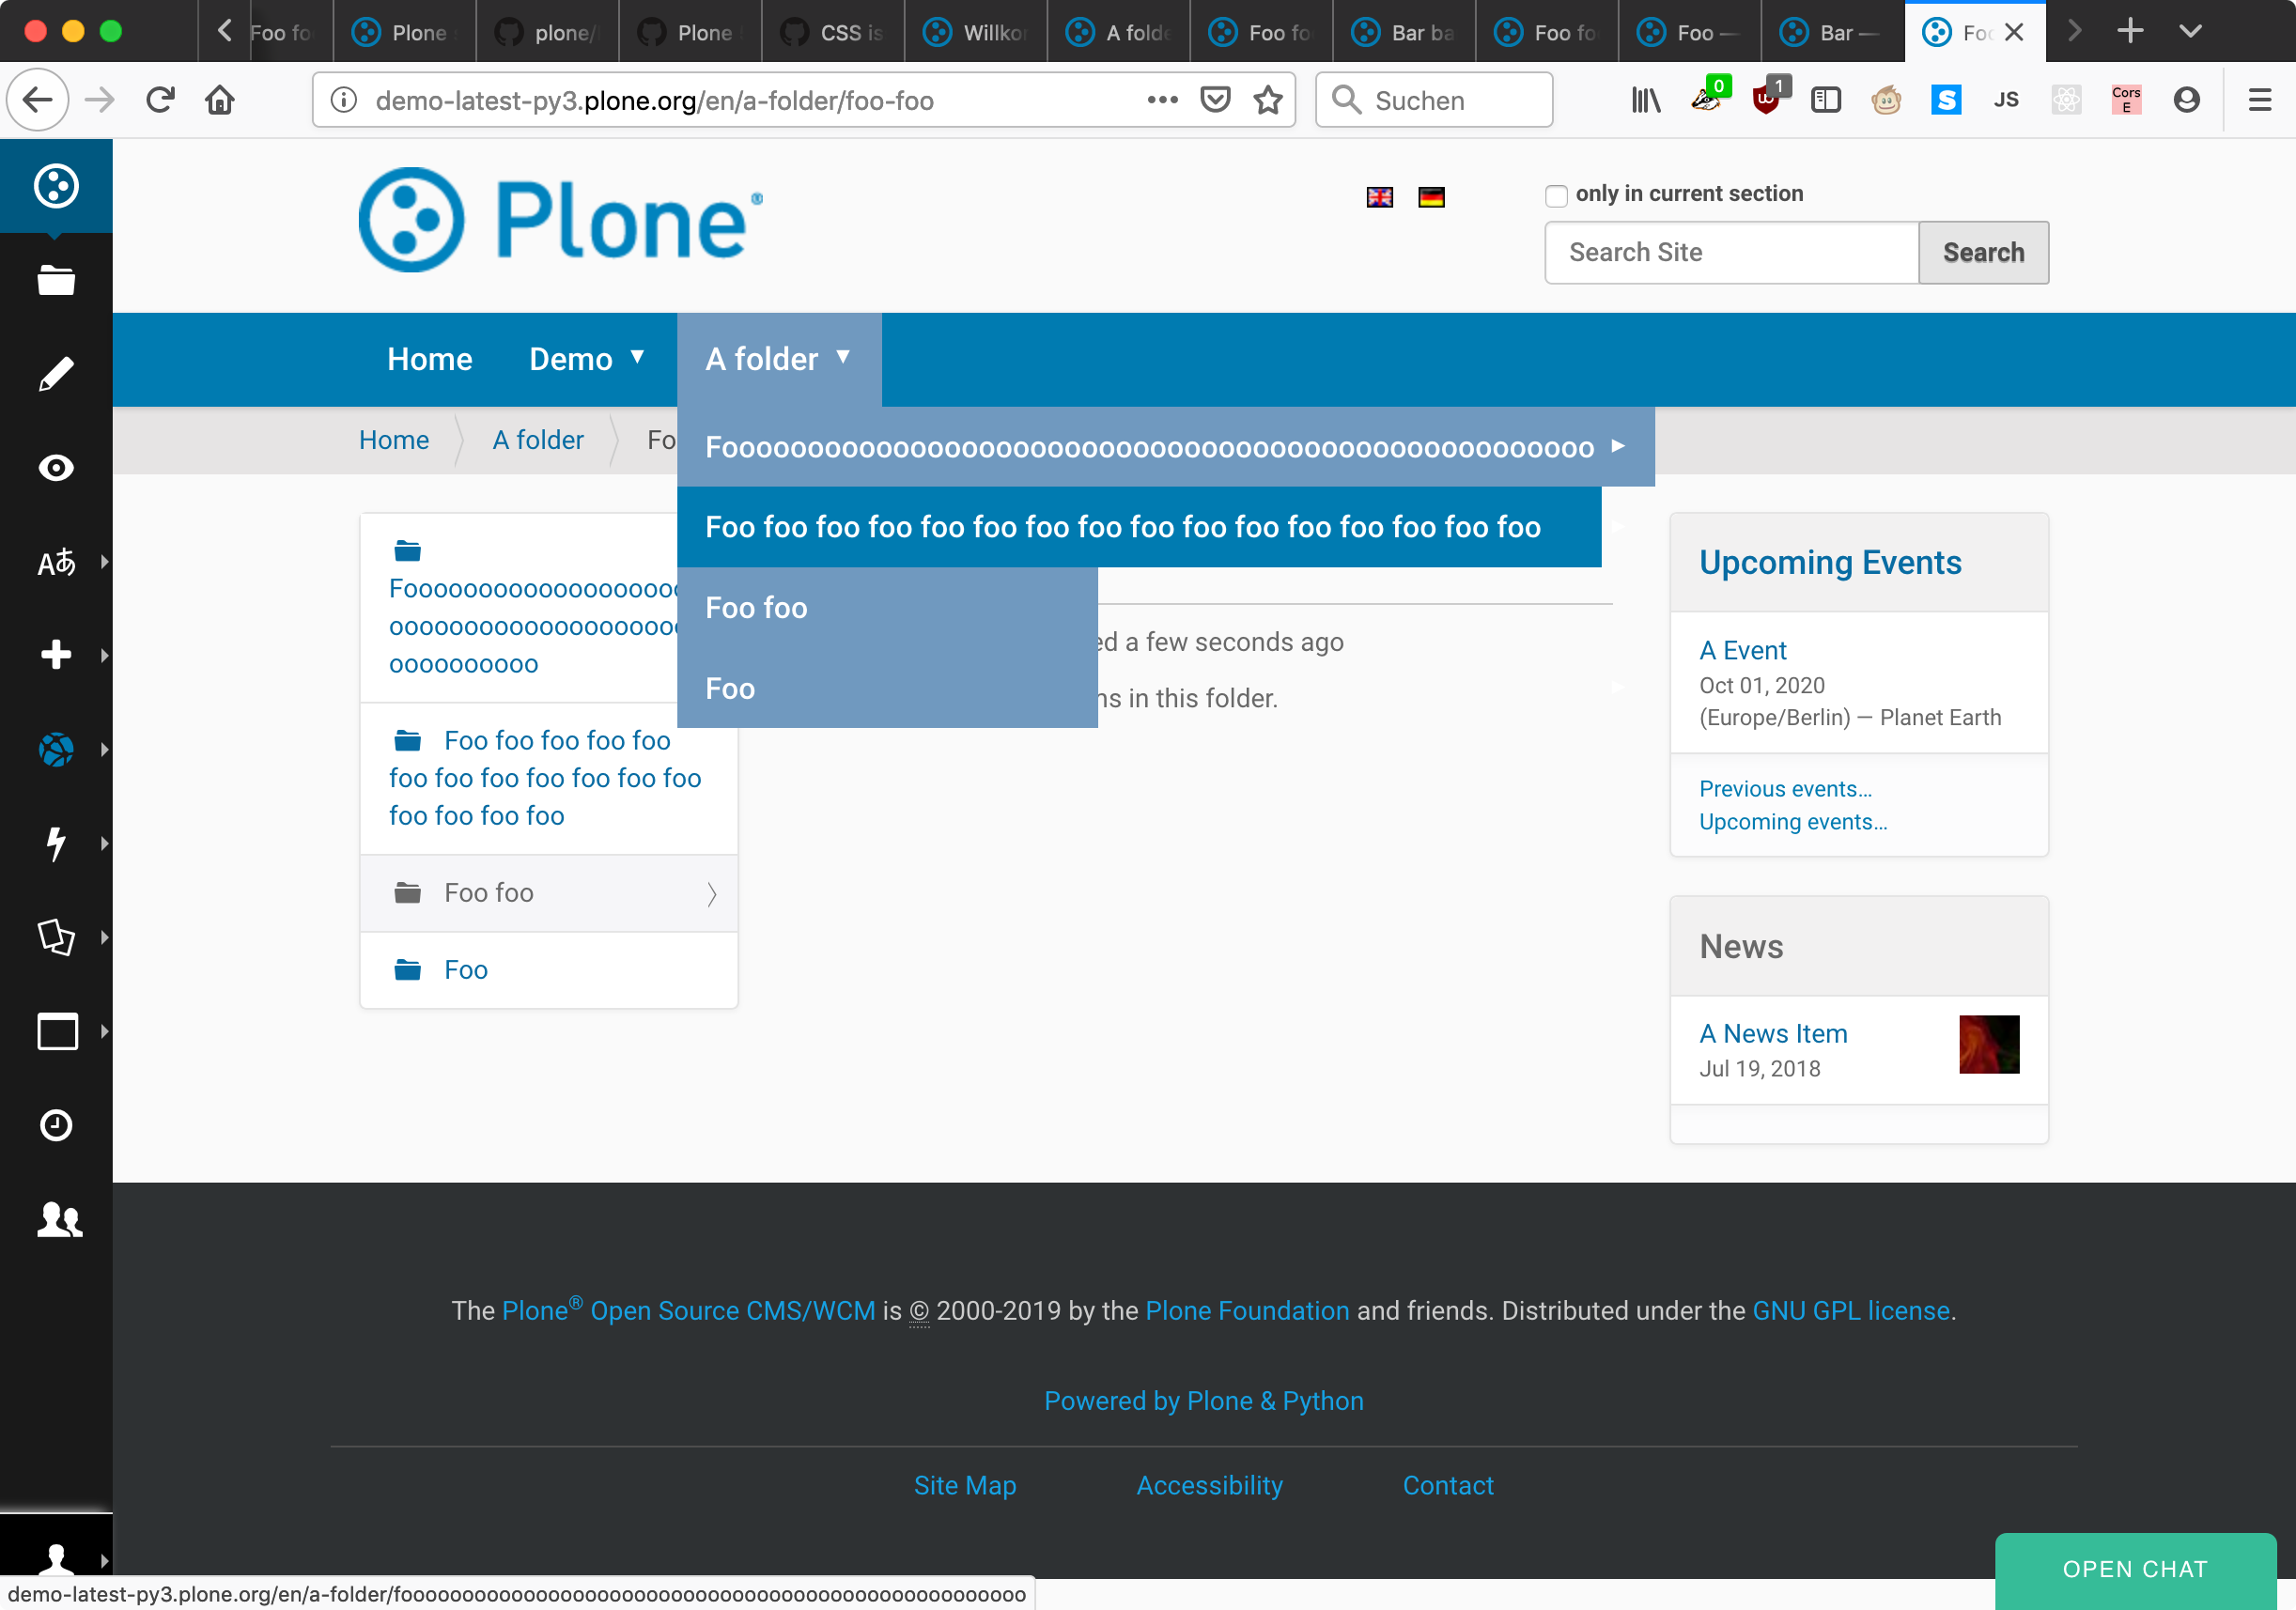 CSS issue with new dropdown menu for 2nd level navigation in Plone